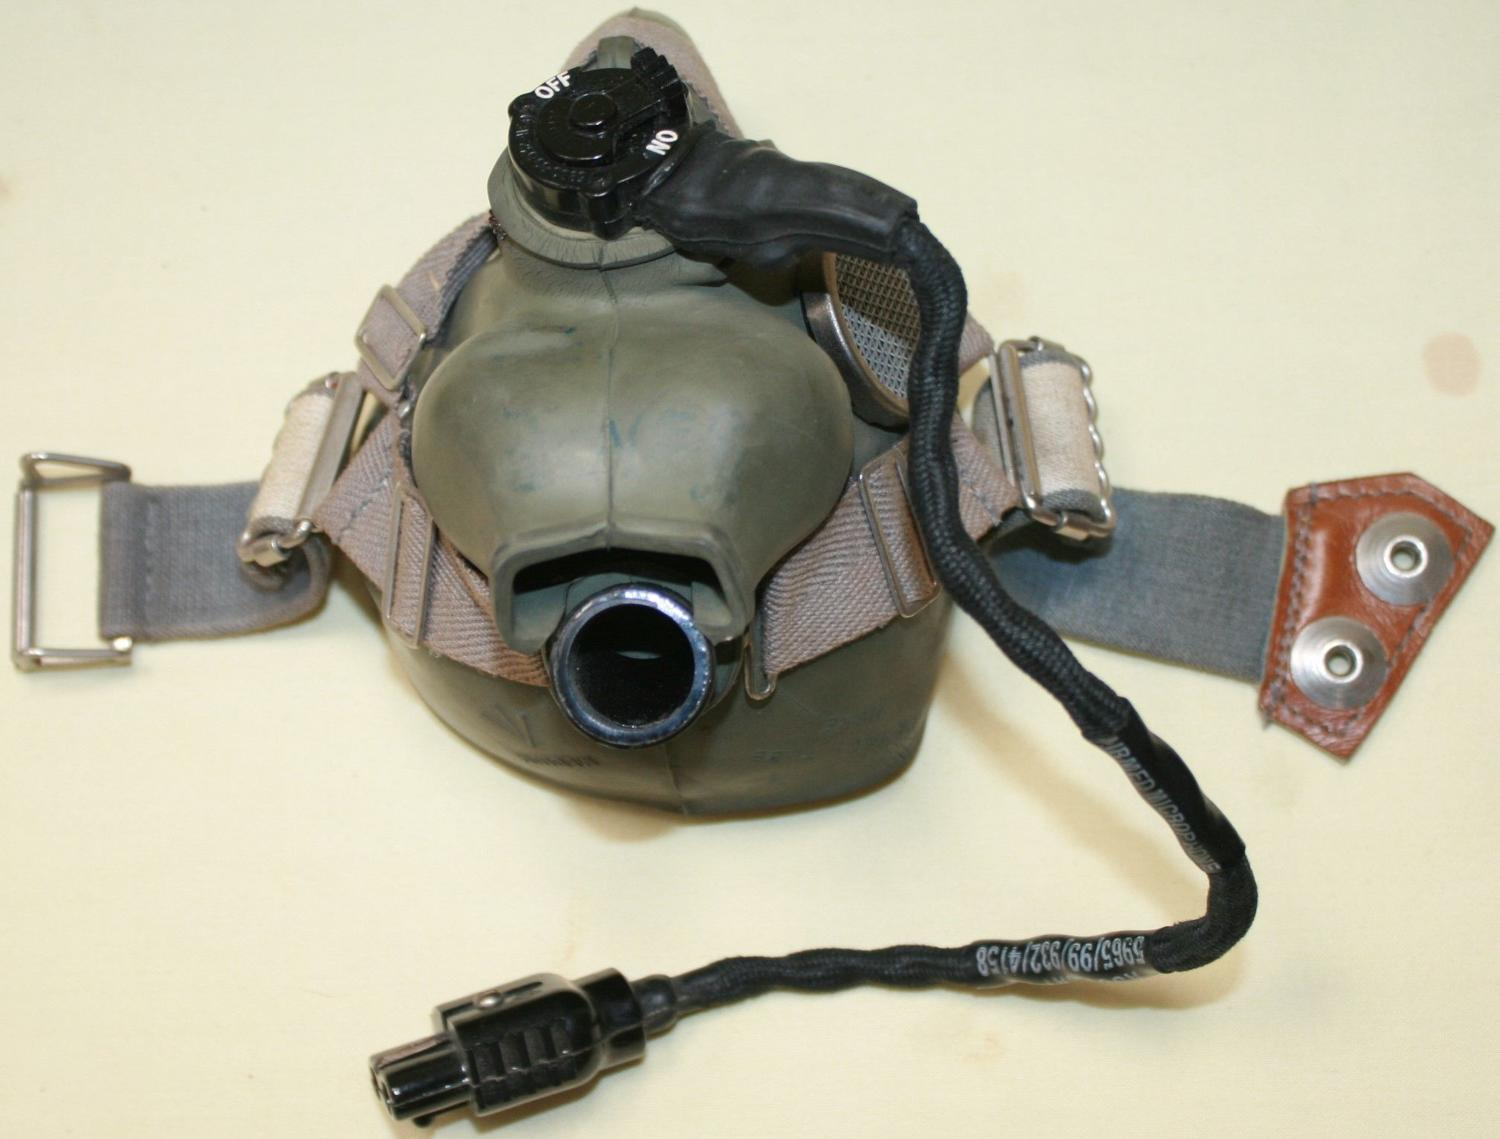 A 1970 DATED H TYPE OXYGEN FACE MASK